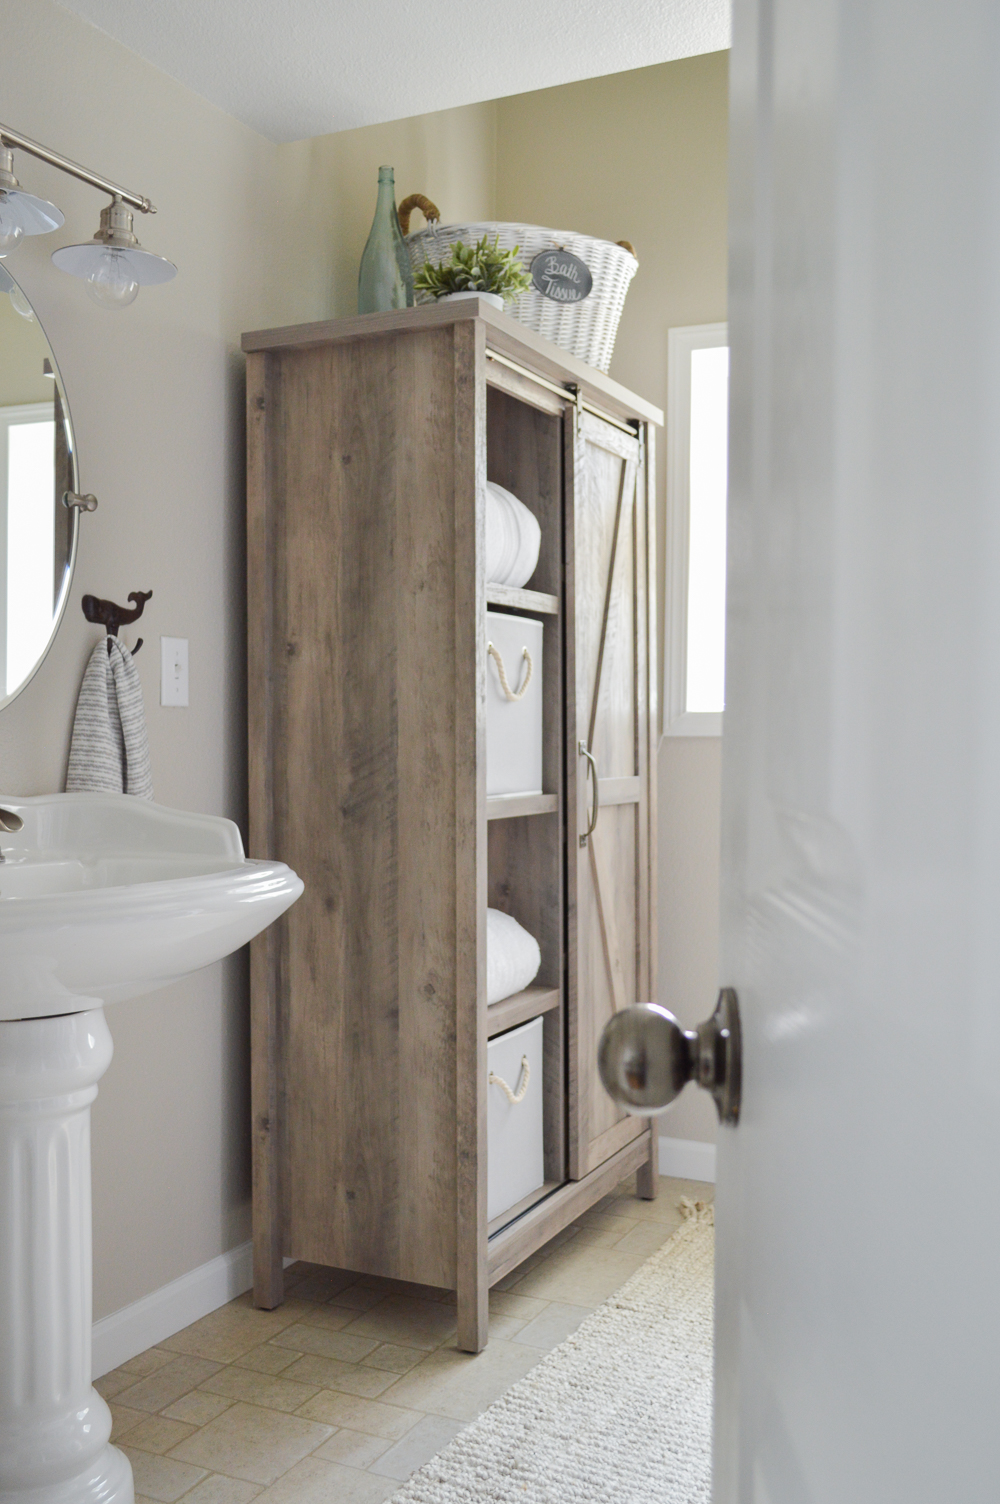 Fresh The Little Cottage Bathroom Makeover at Fox Hollow Cottage Coastal cottage farmhouse blend with Better